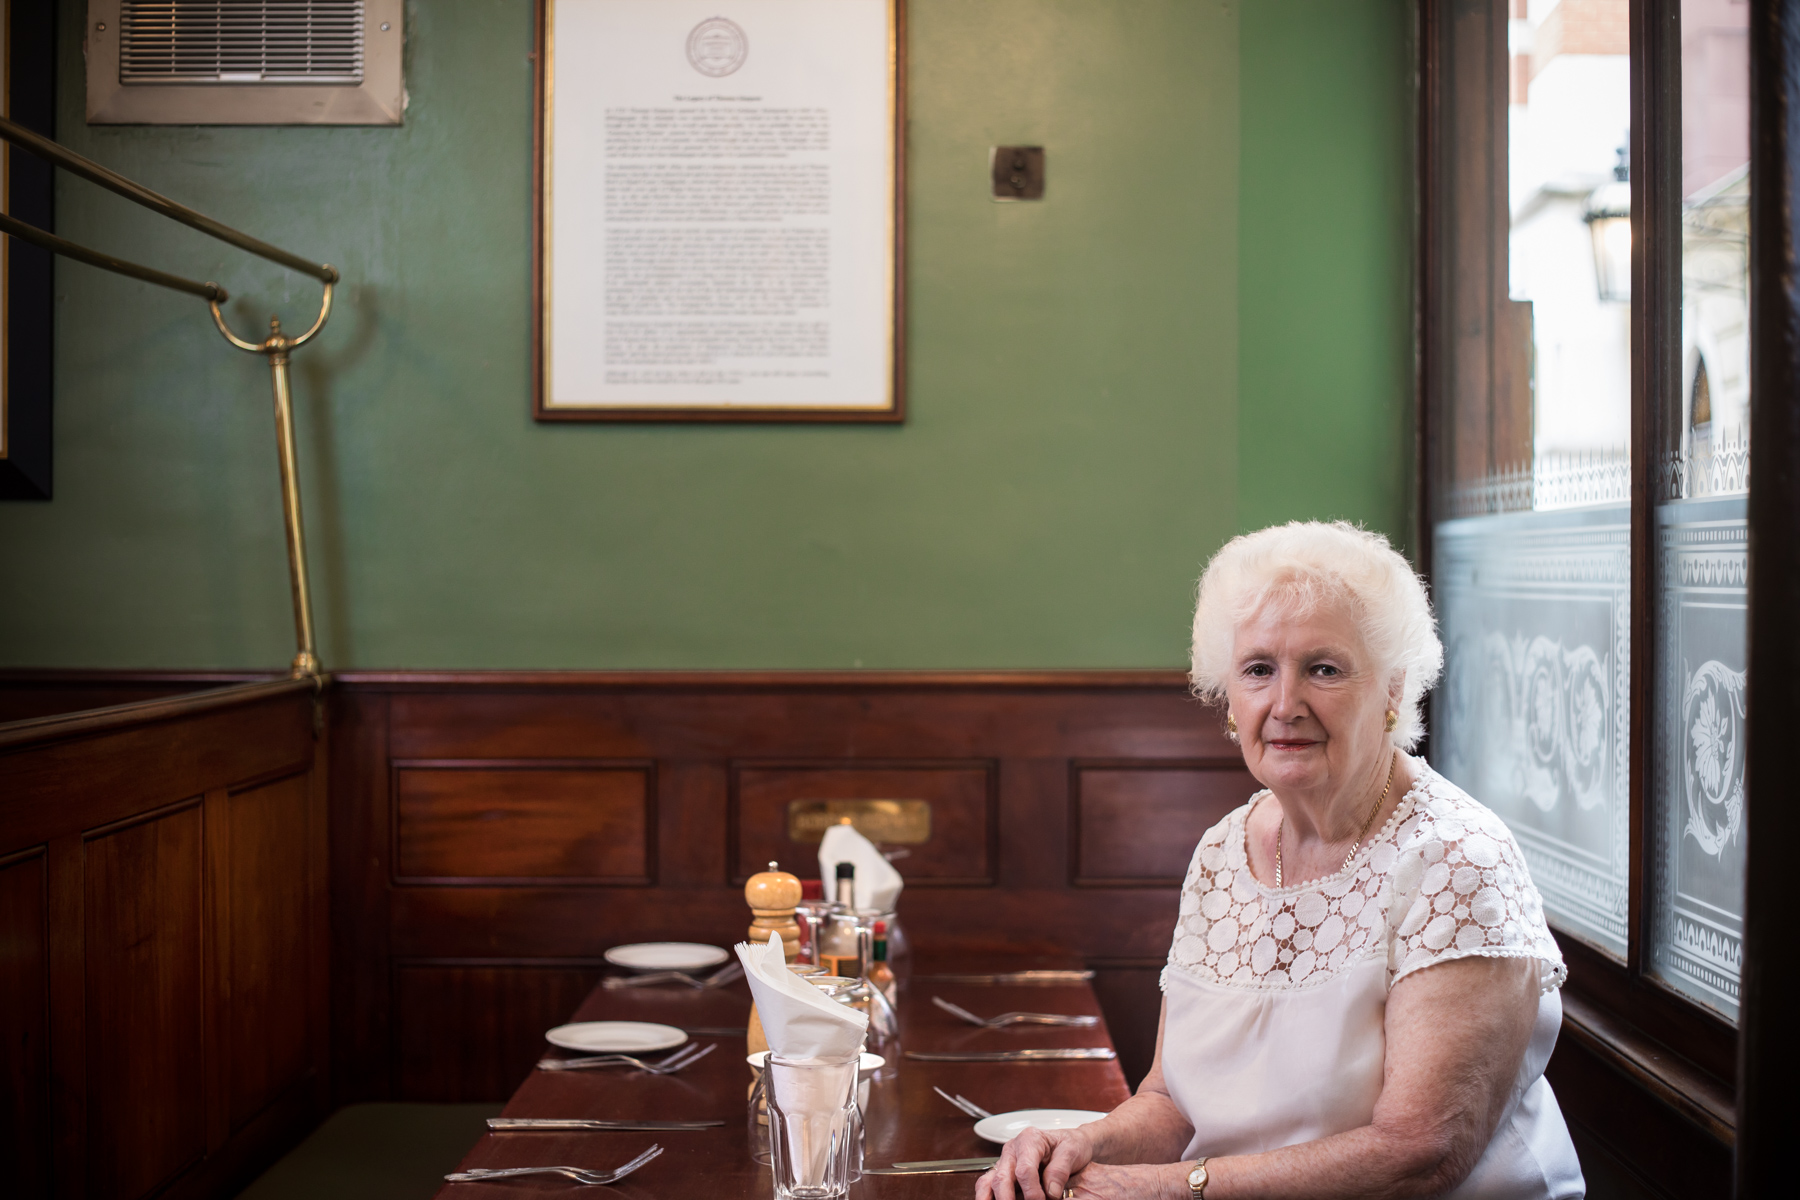 Maureen has been working at Simpson's Tavern in the City for 40 years now.